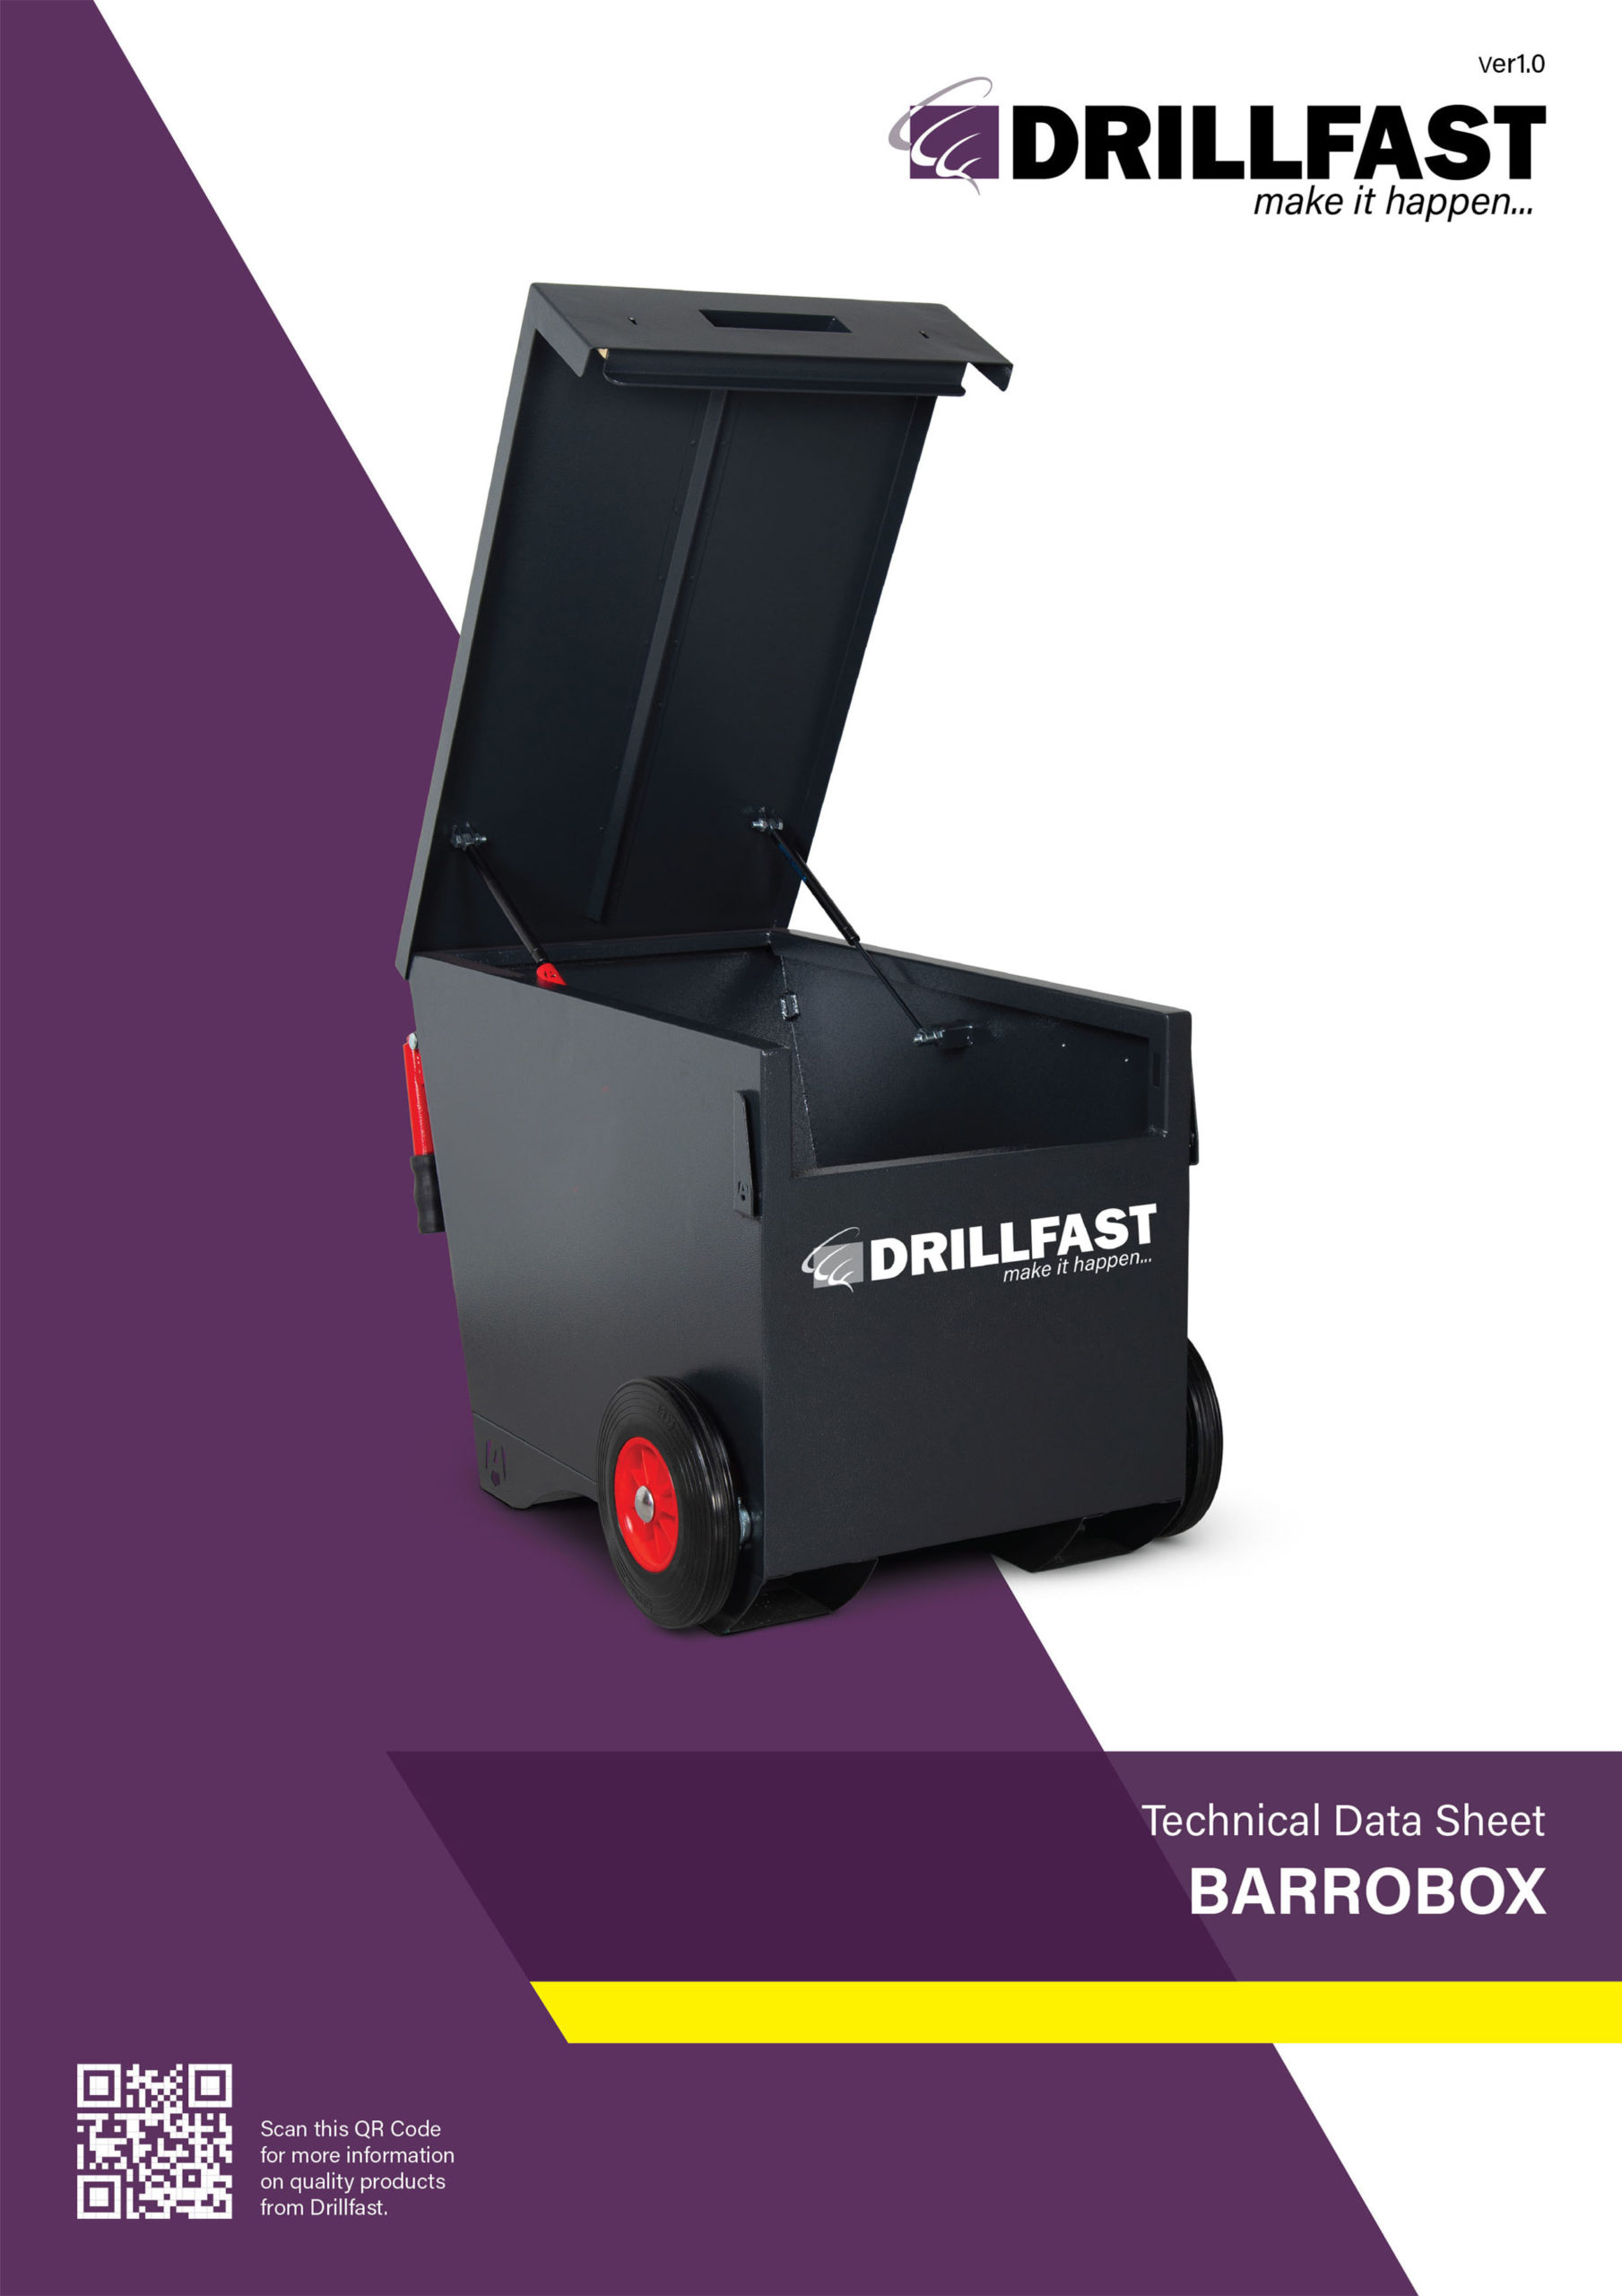 Armorgard barrobox drillfast on-site storage solutions